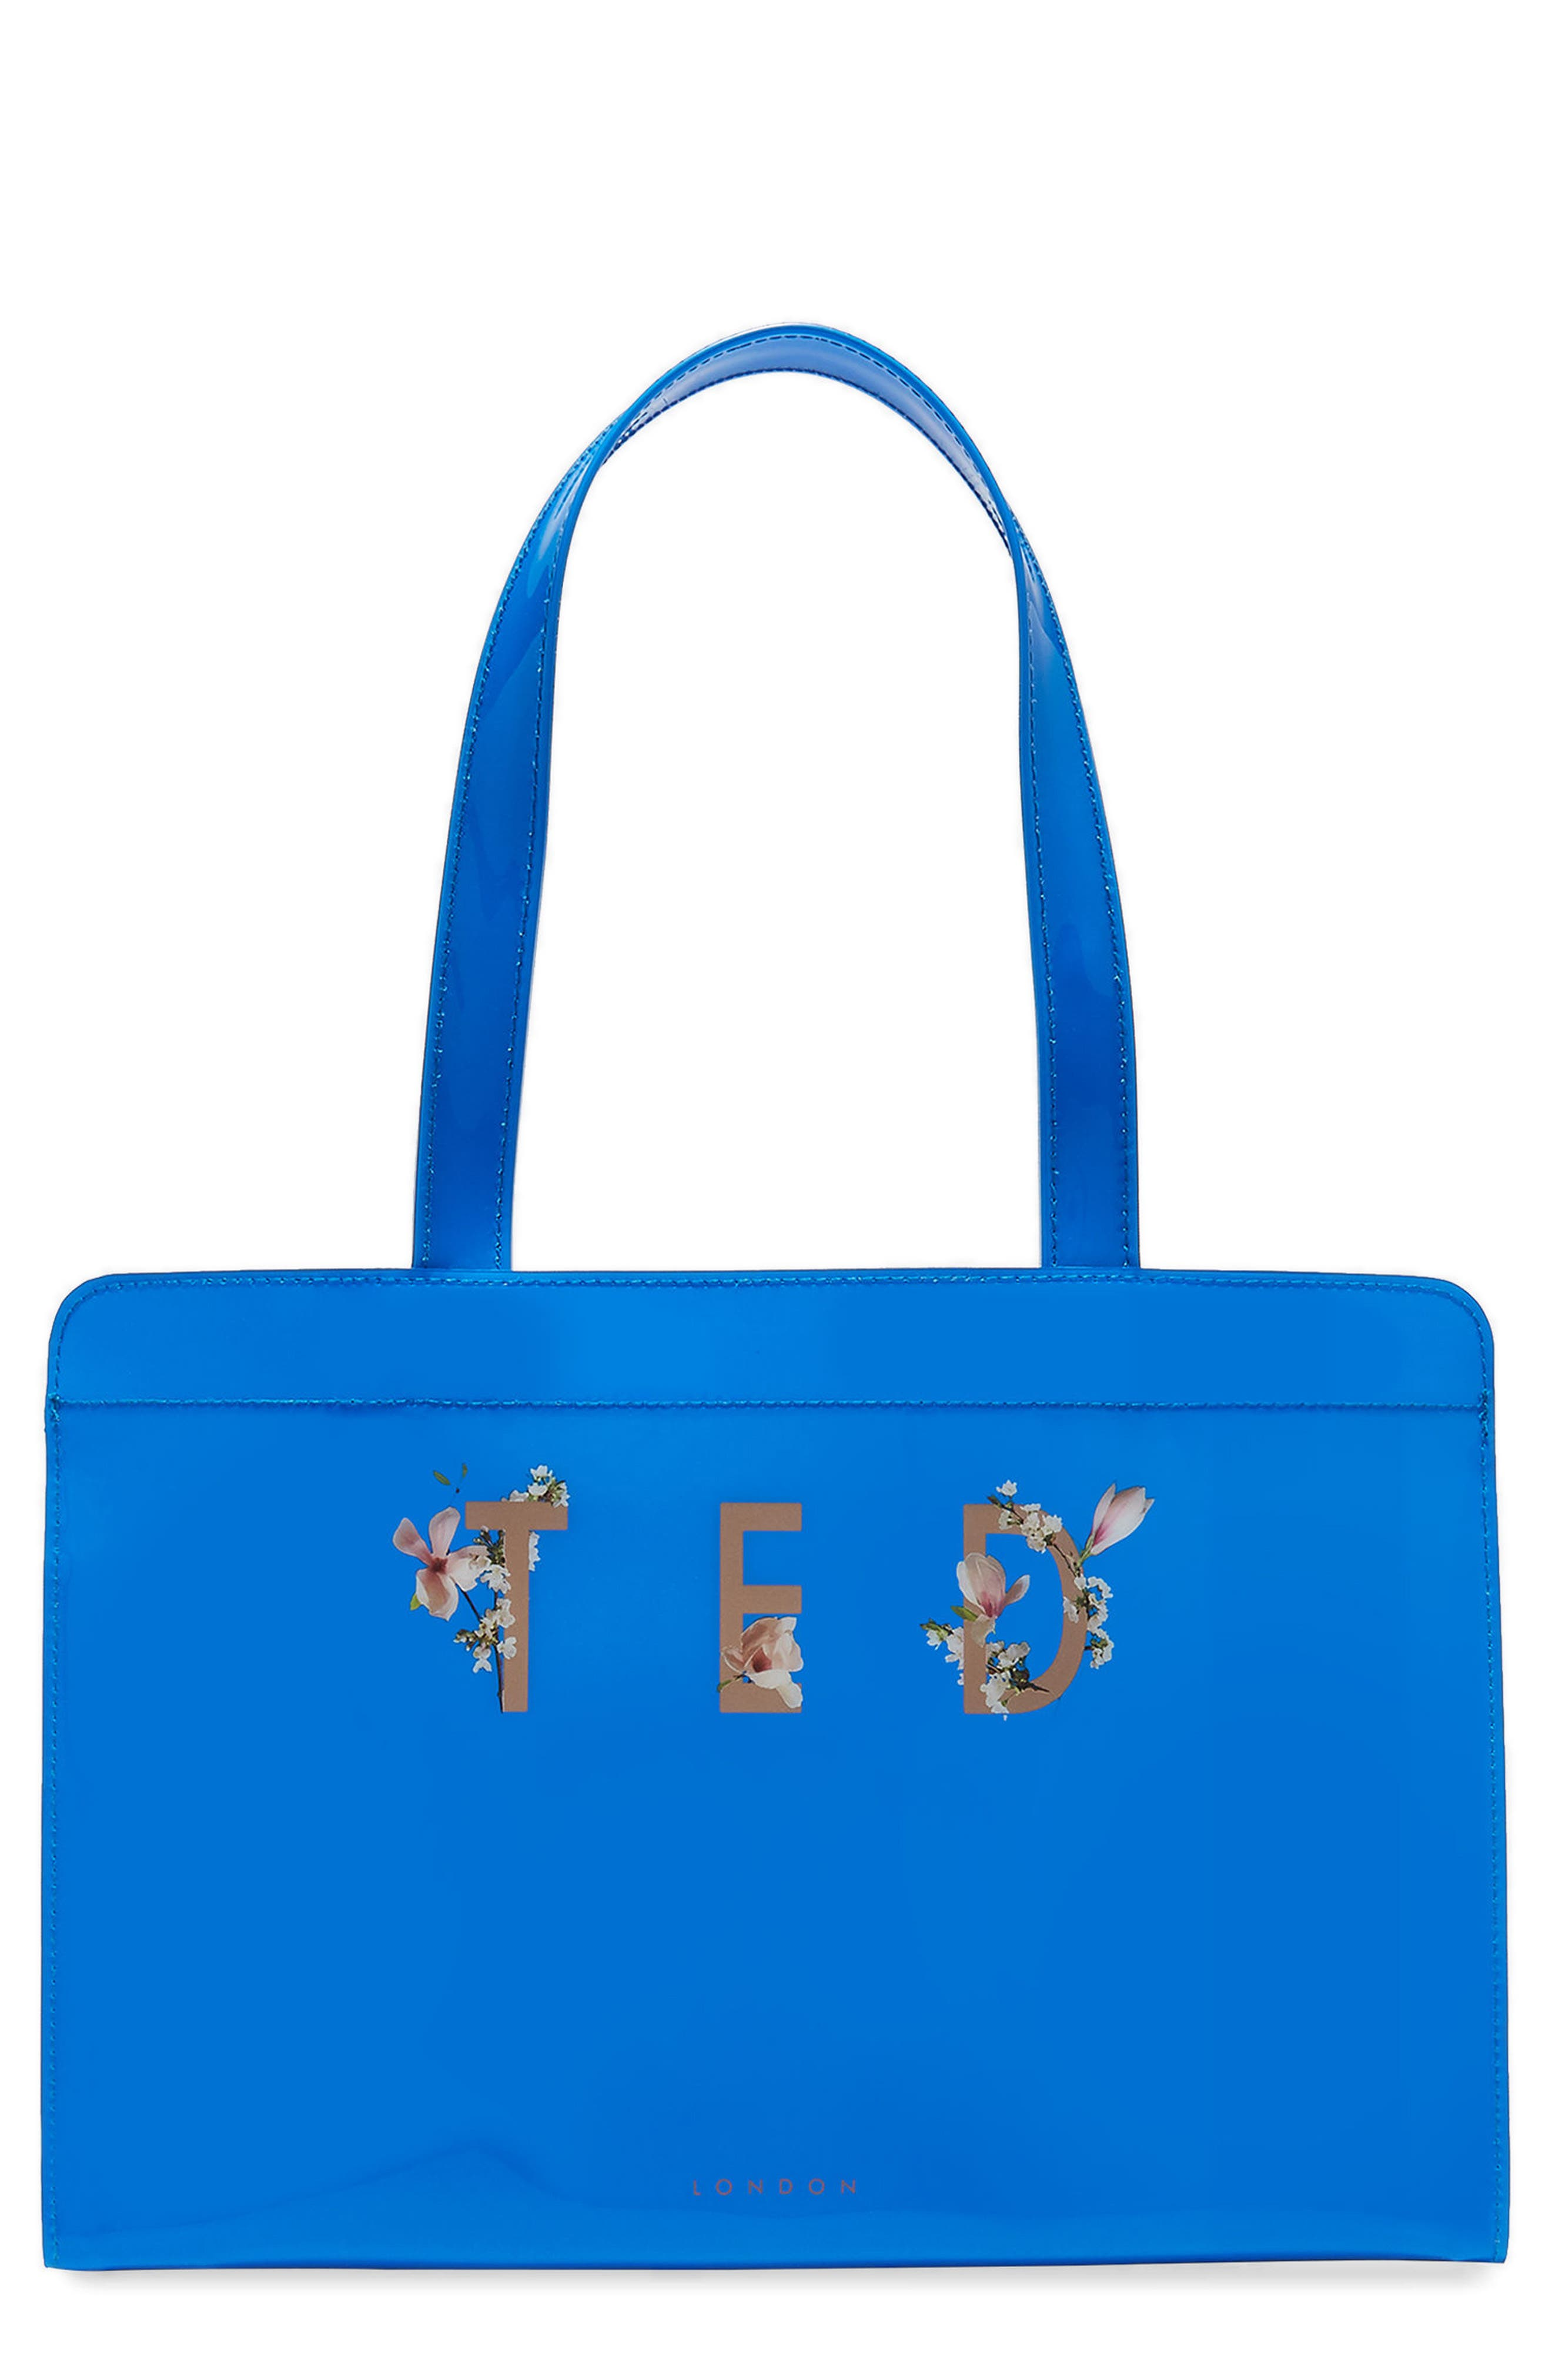 Fizz Tote,                         Main,                         color, Bright Blue